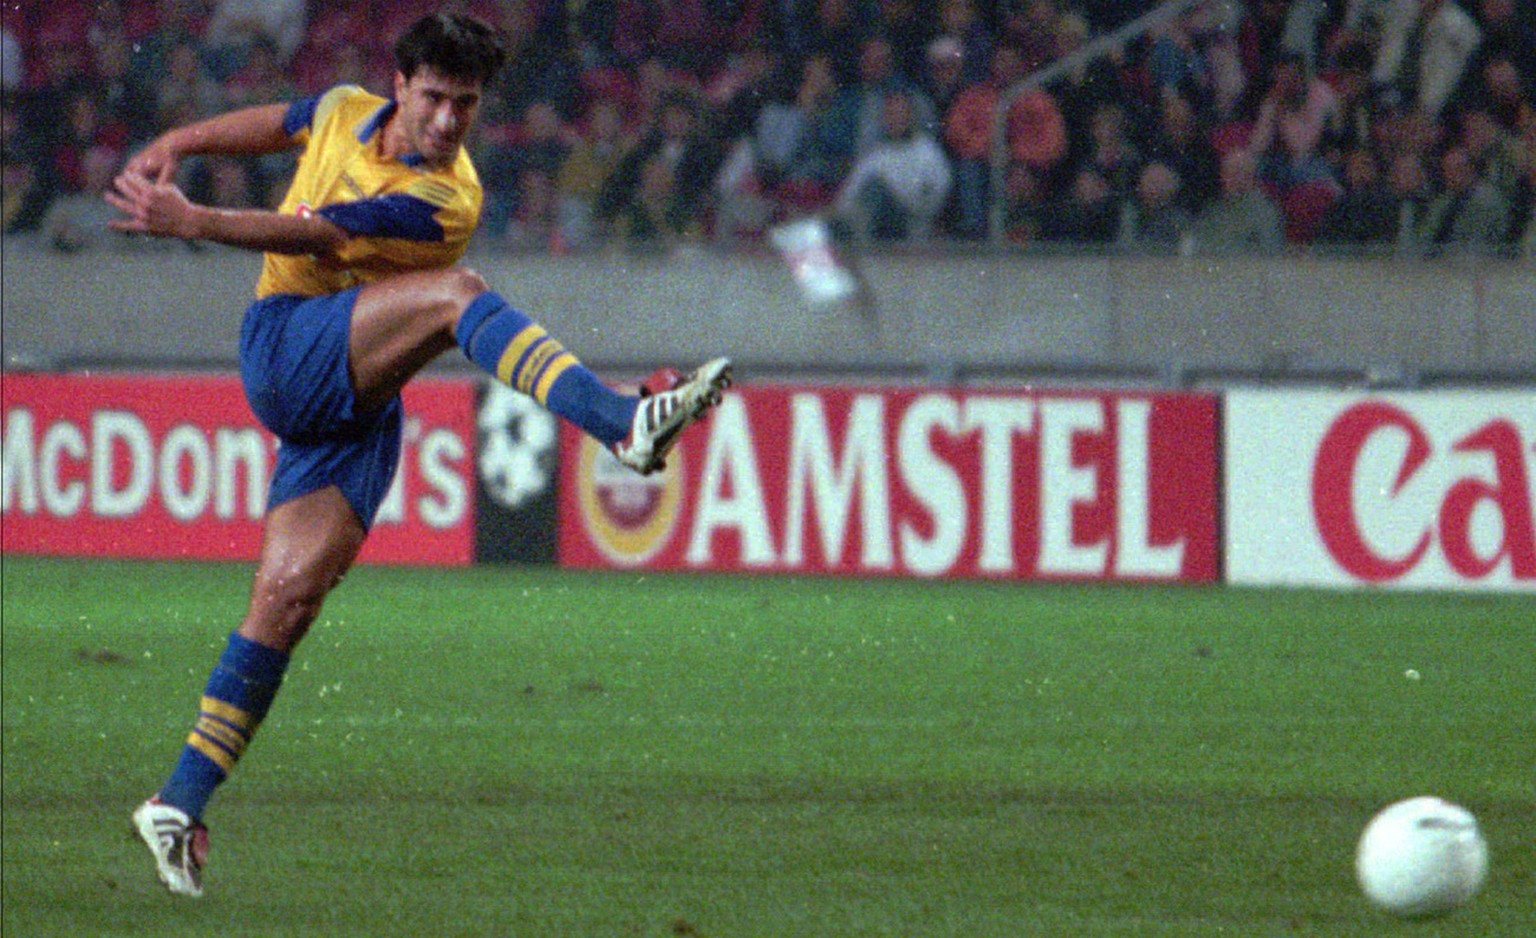 Grasshoppers Murat Yakin scores decisive goal against Ajax during a Champions League match in Amsterdam, Wednesday Sept. 25 1996. Grasshoppers won 1-0.(AP Photo/Dusan Vranic)